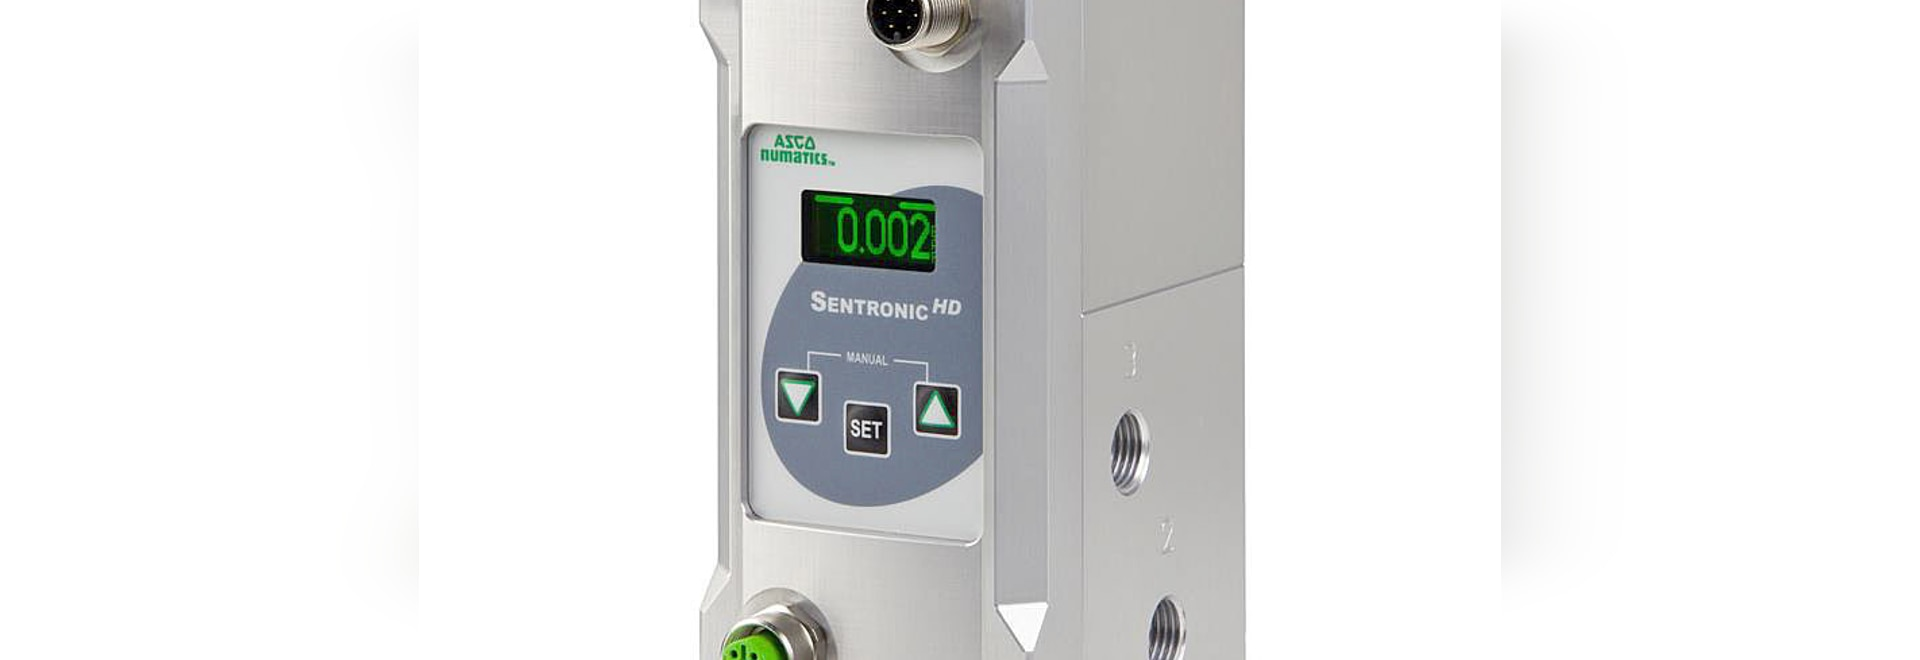 ASCO Numatics Launches Sentronic HD